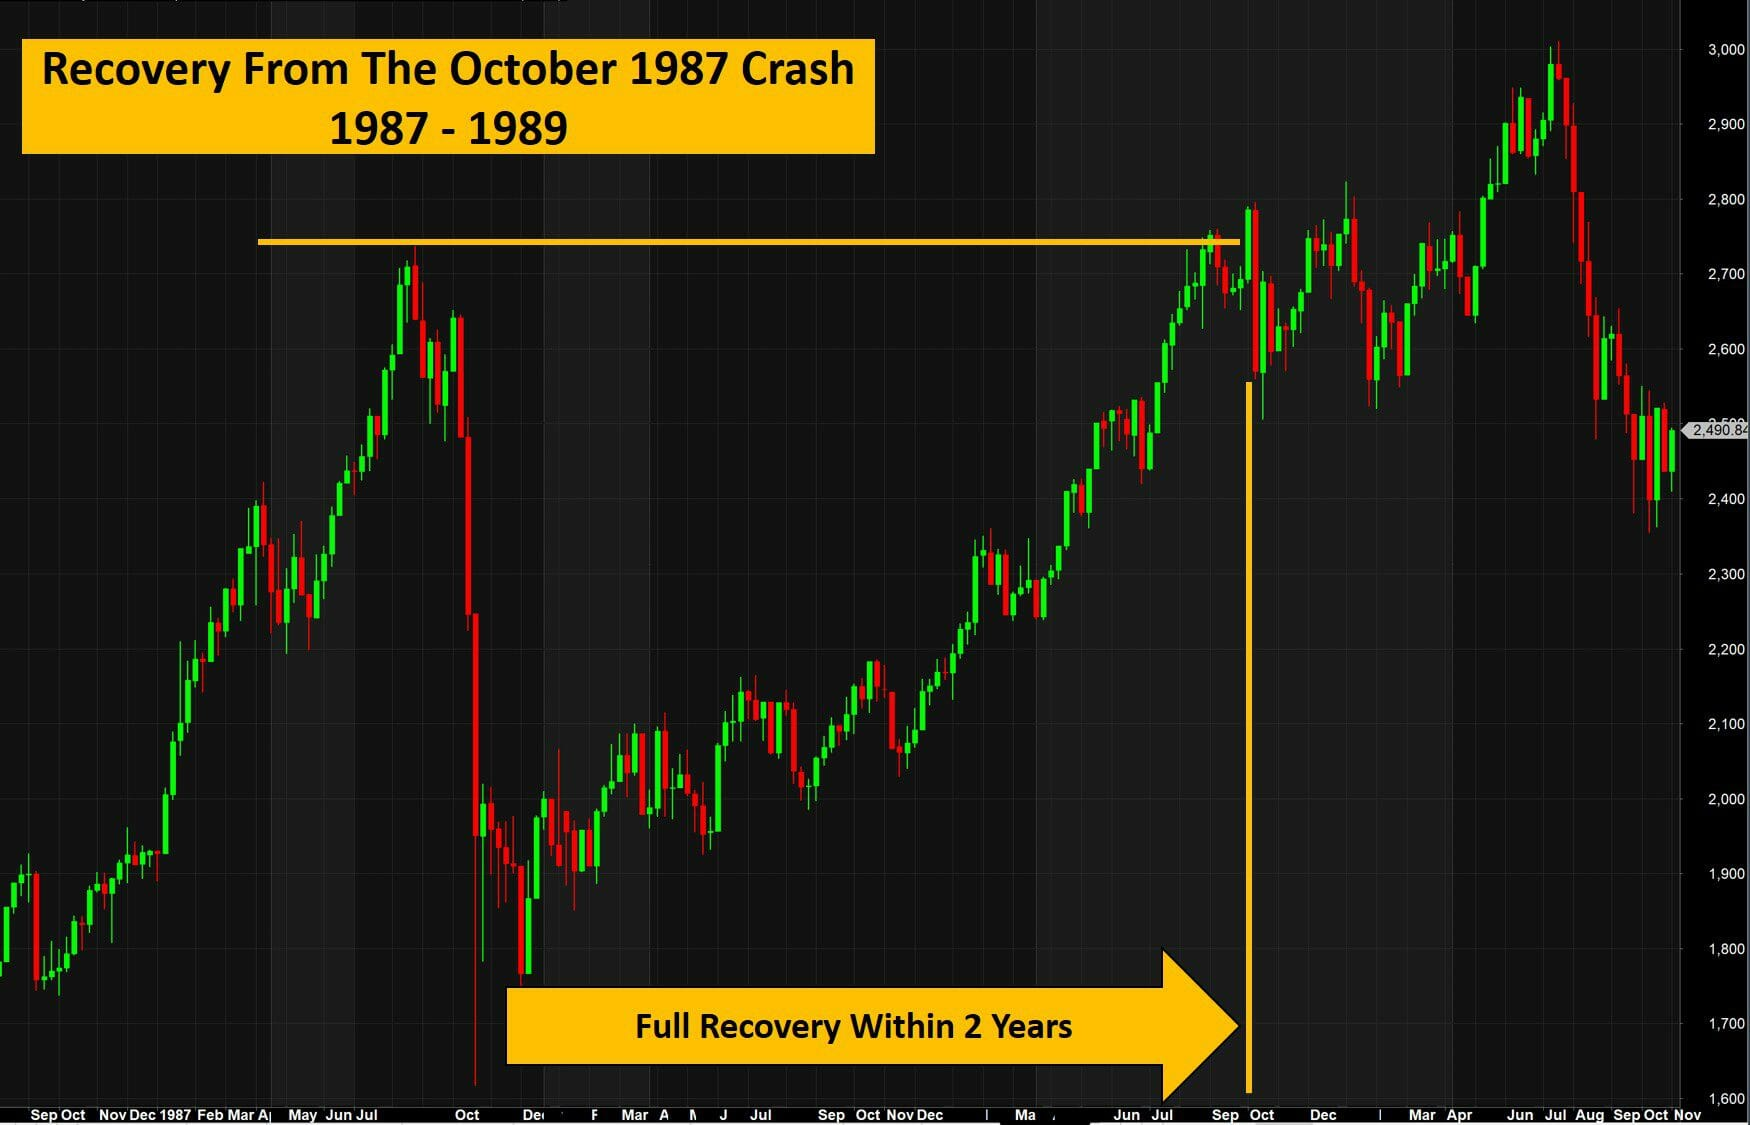 The Stock Market Crash of 1987 - How long was the recovery after the October 1987 Crash